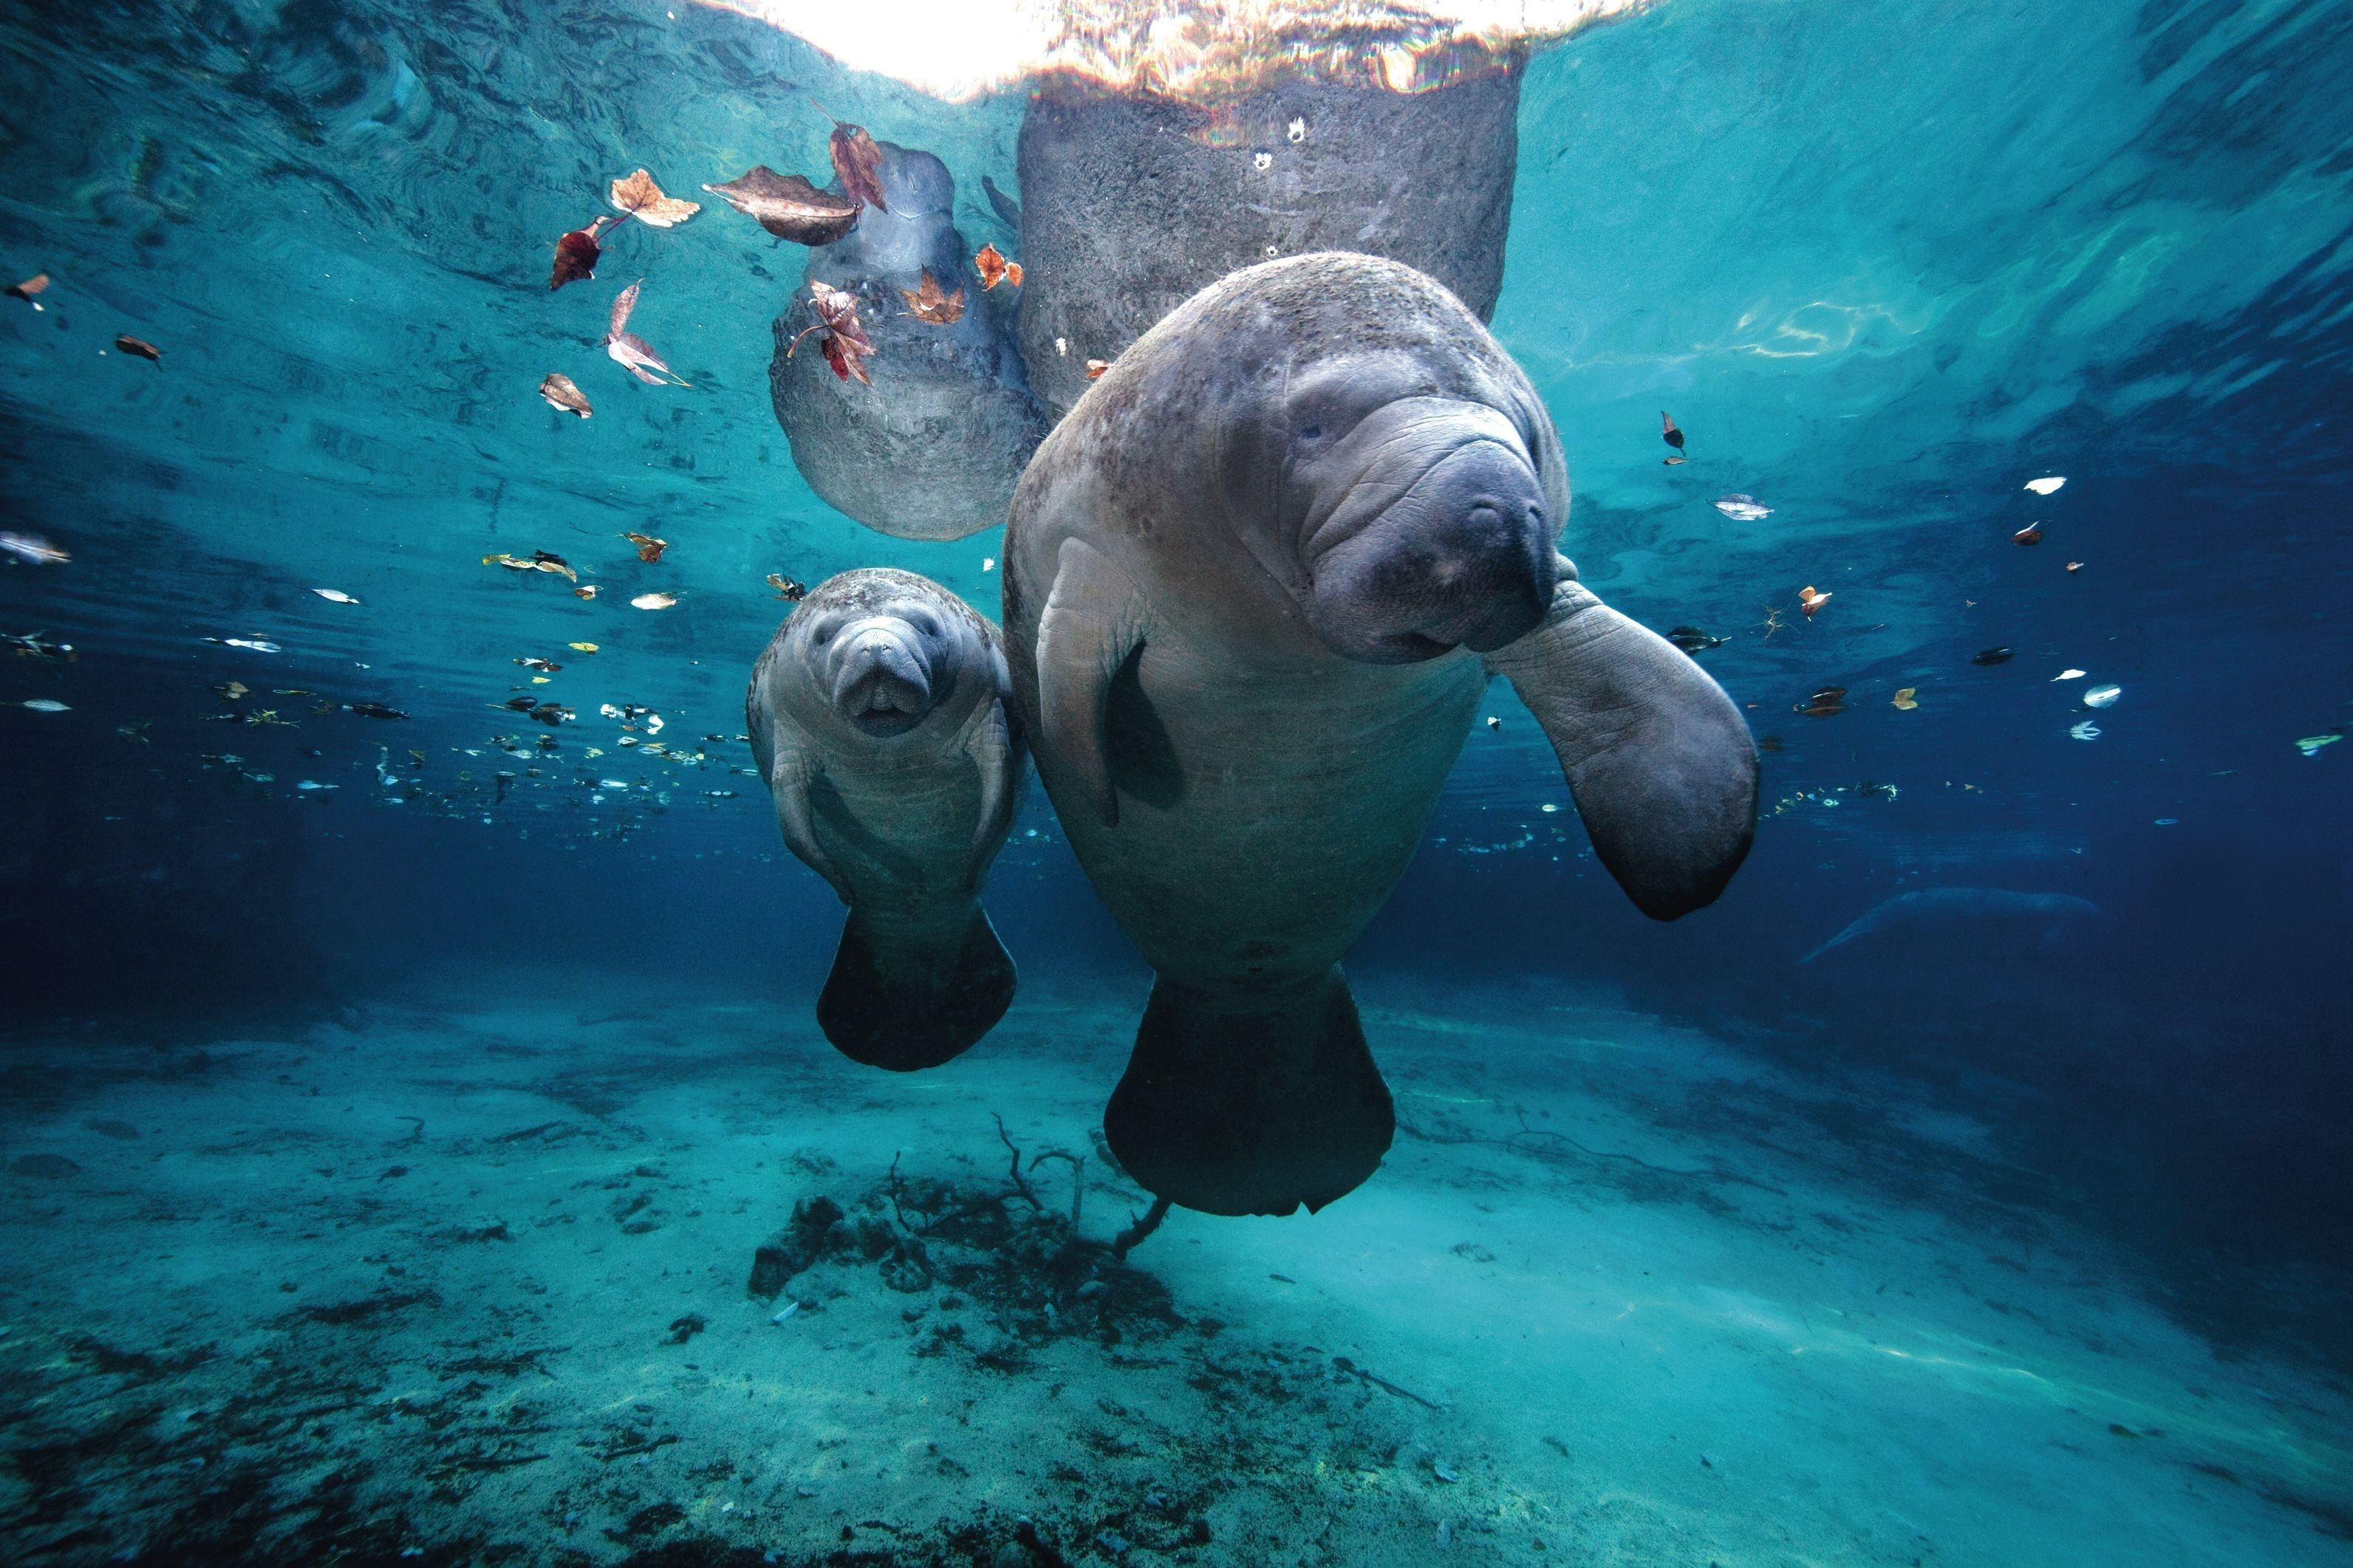 Manatee mama and pup in the Crystal River Florida http